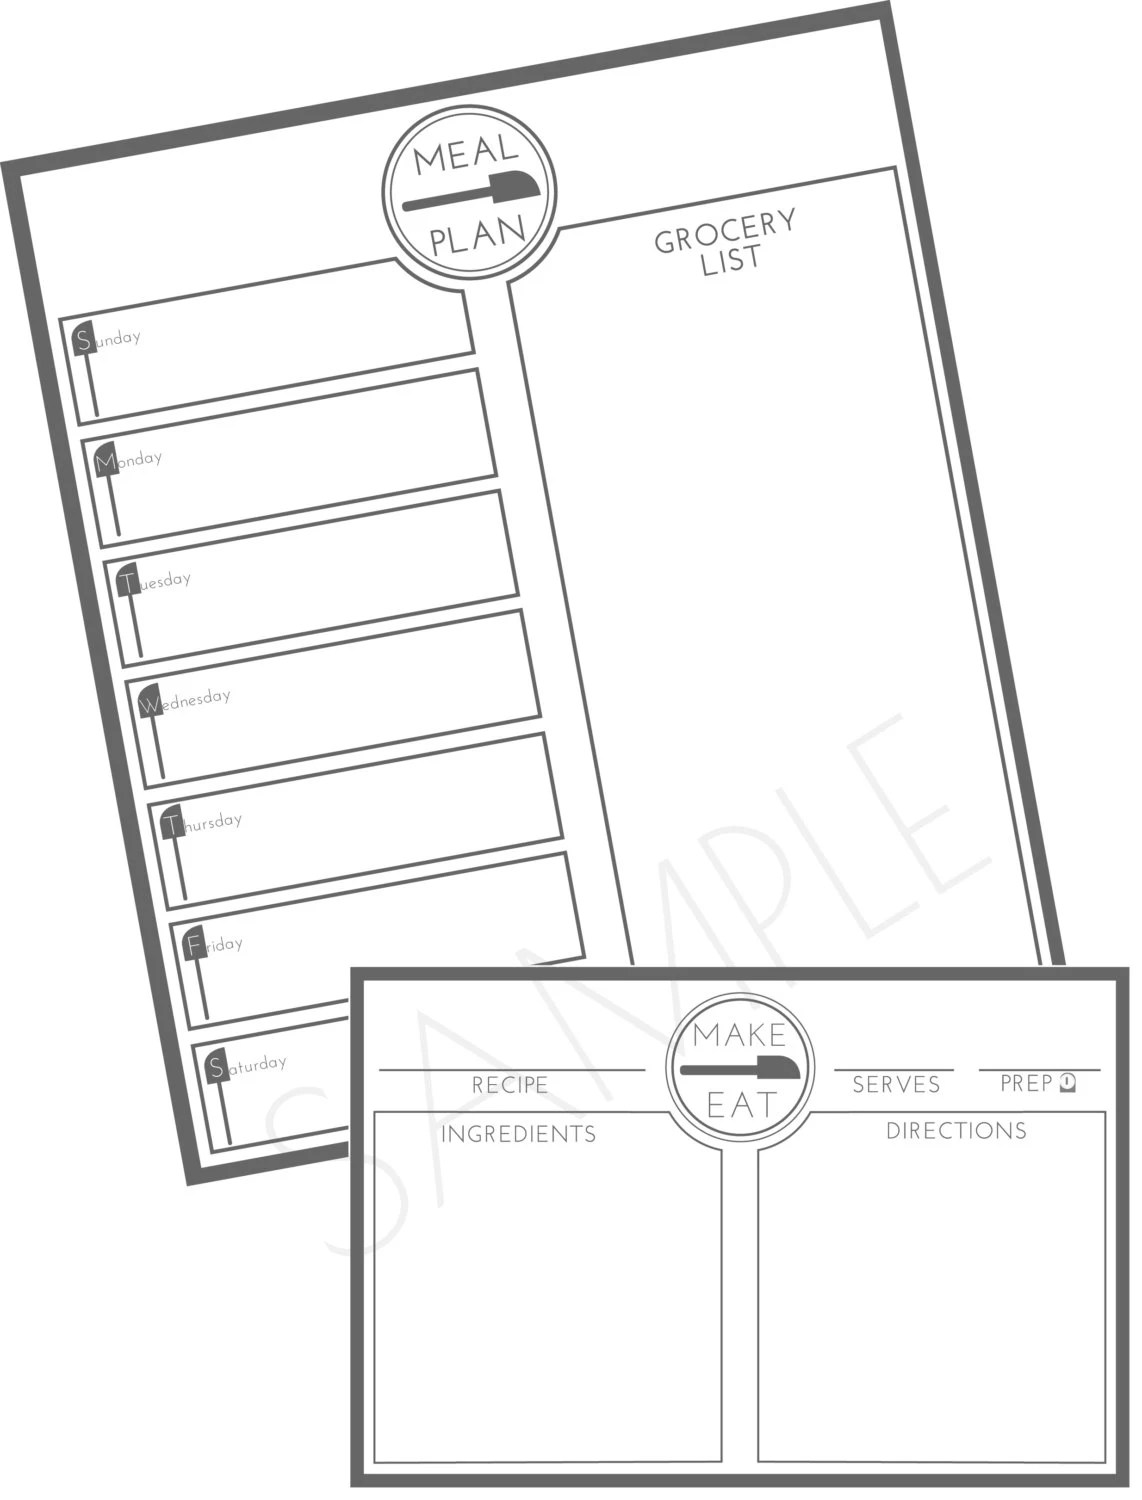 Recipe Card and Weekly Meal Plan Kitchen Set by